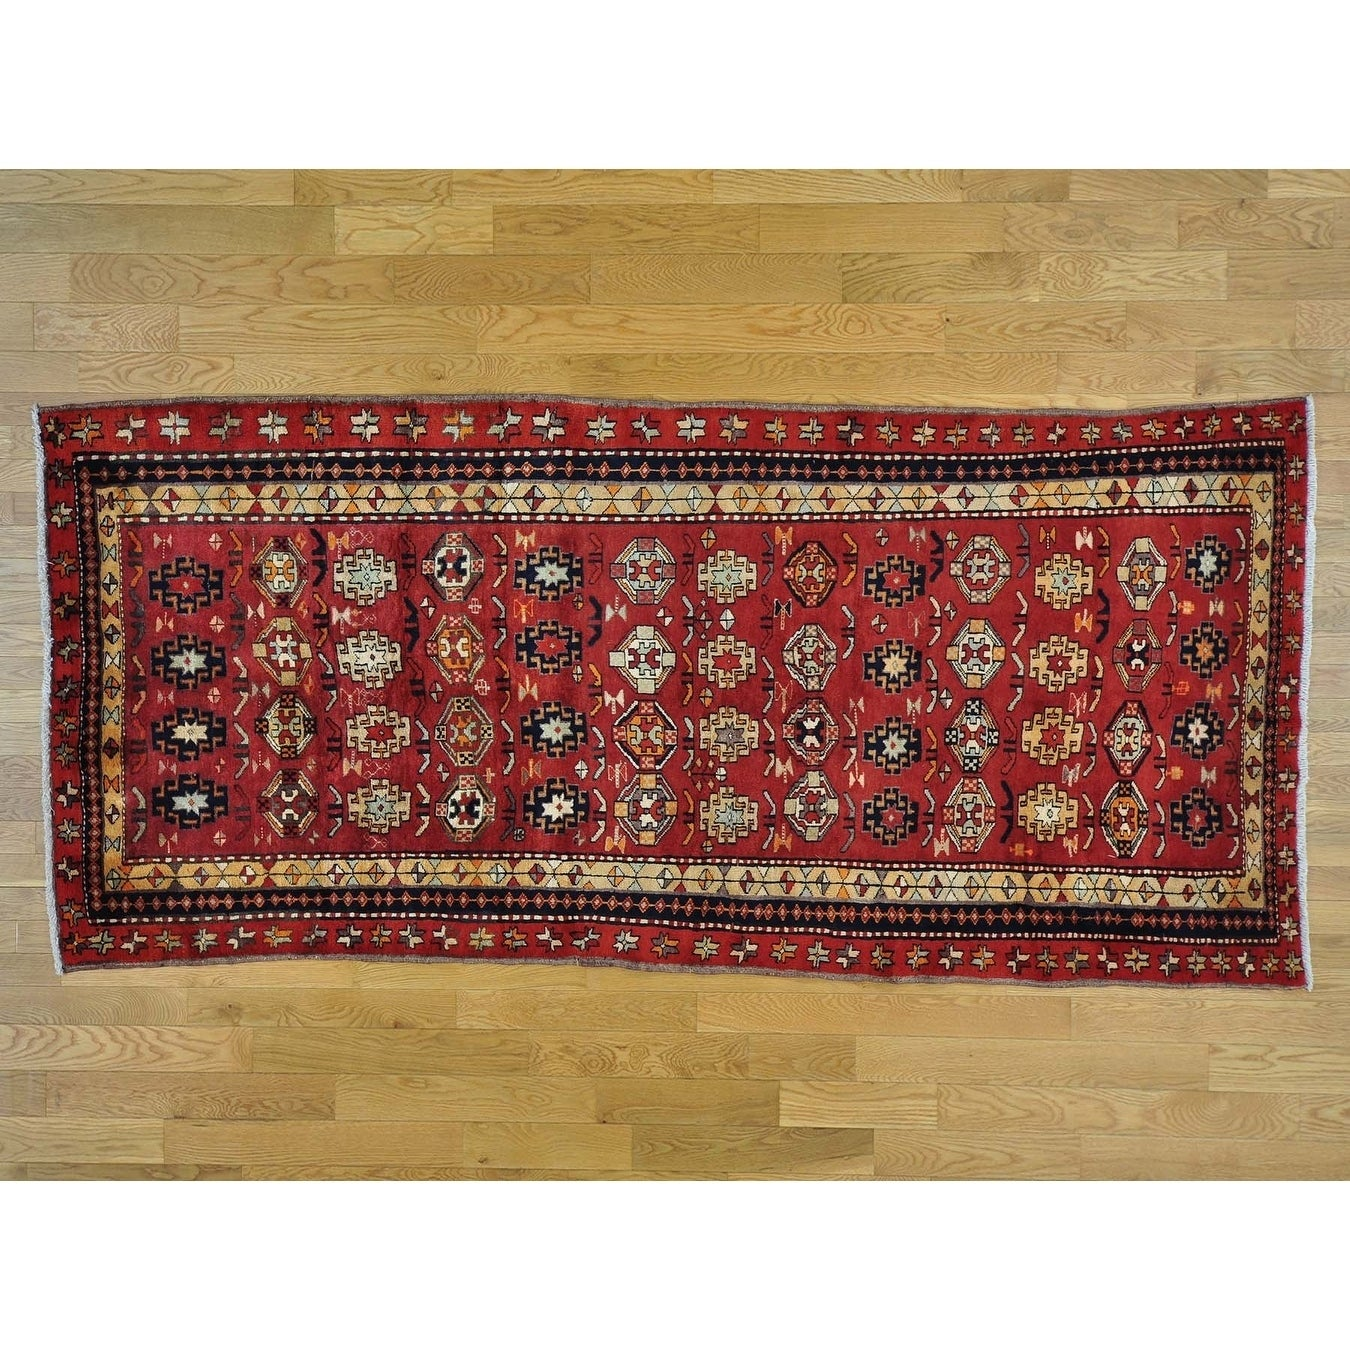 Hand Knotted Red Persian with Wool Oriental Rug - 48 x 103